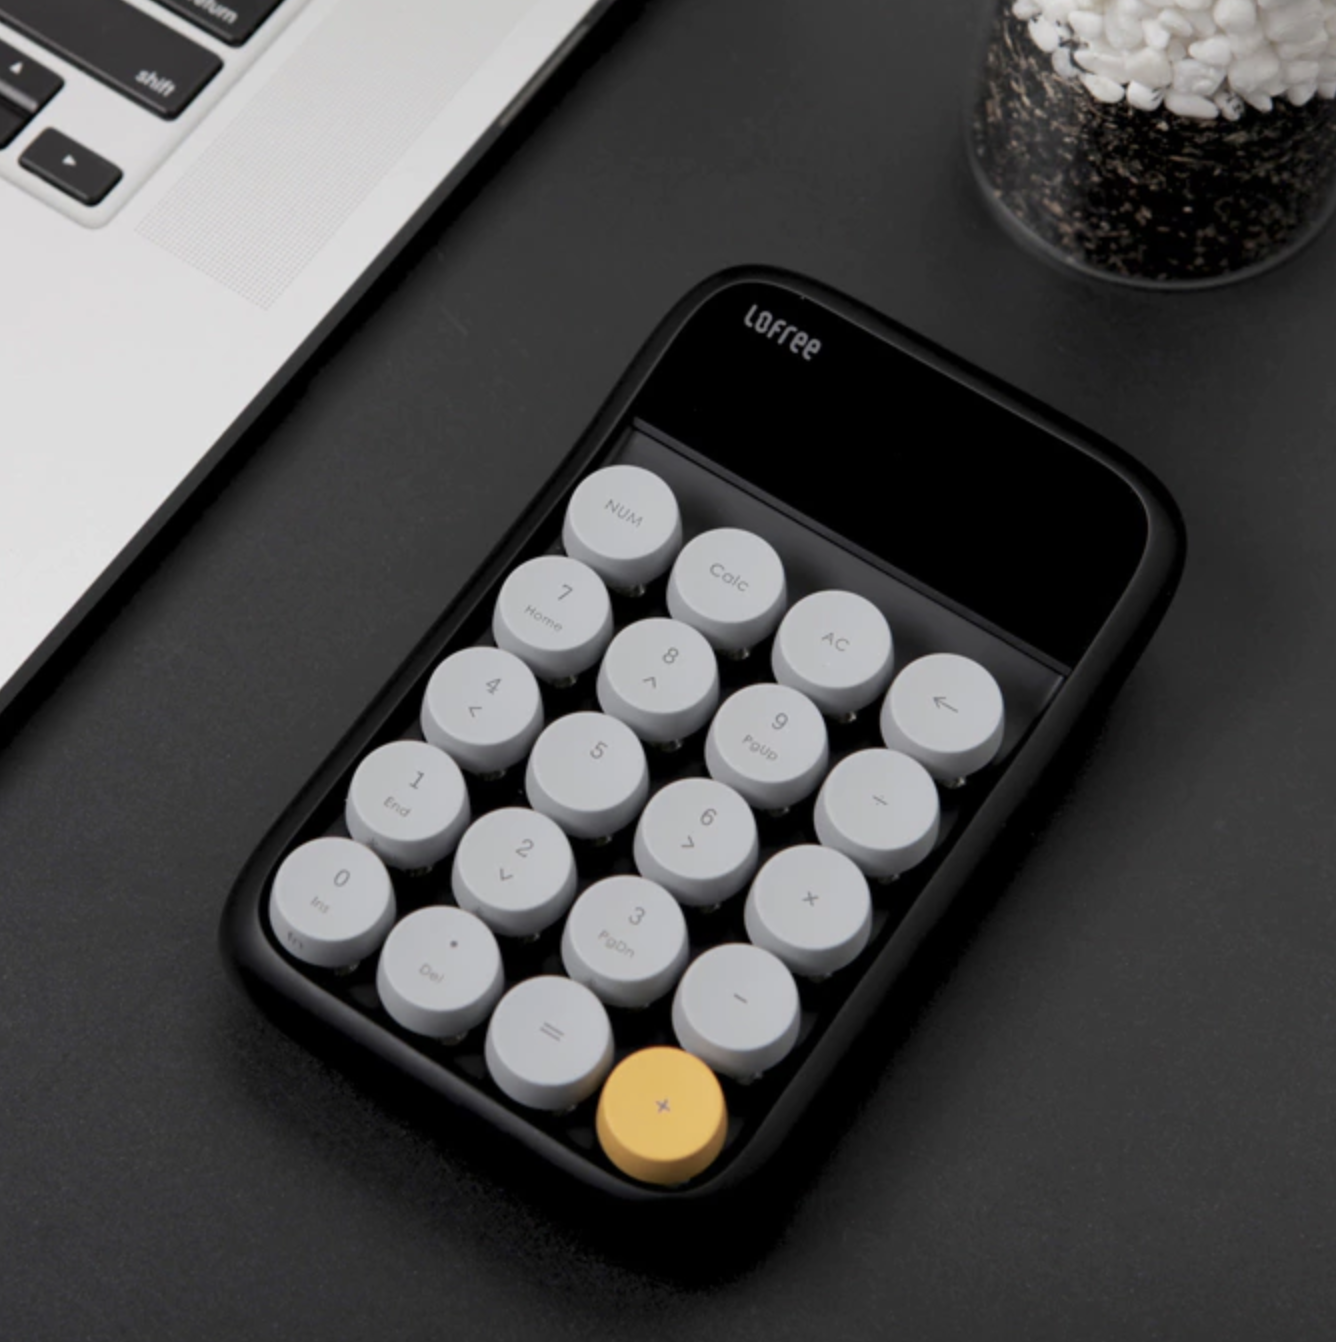 Digit Number Pad Wireless Retro Mechanical All In One Calculator Design Id Design Design